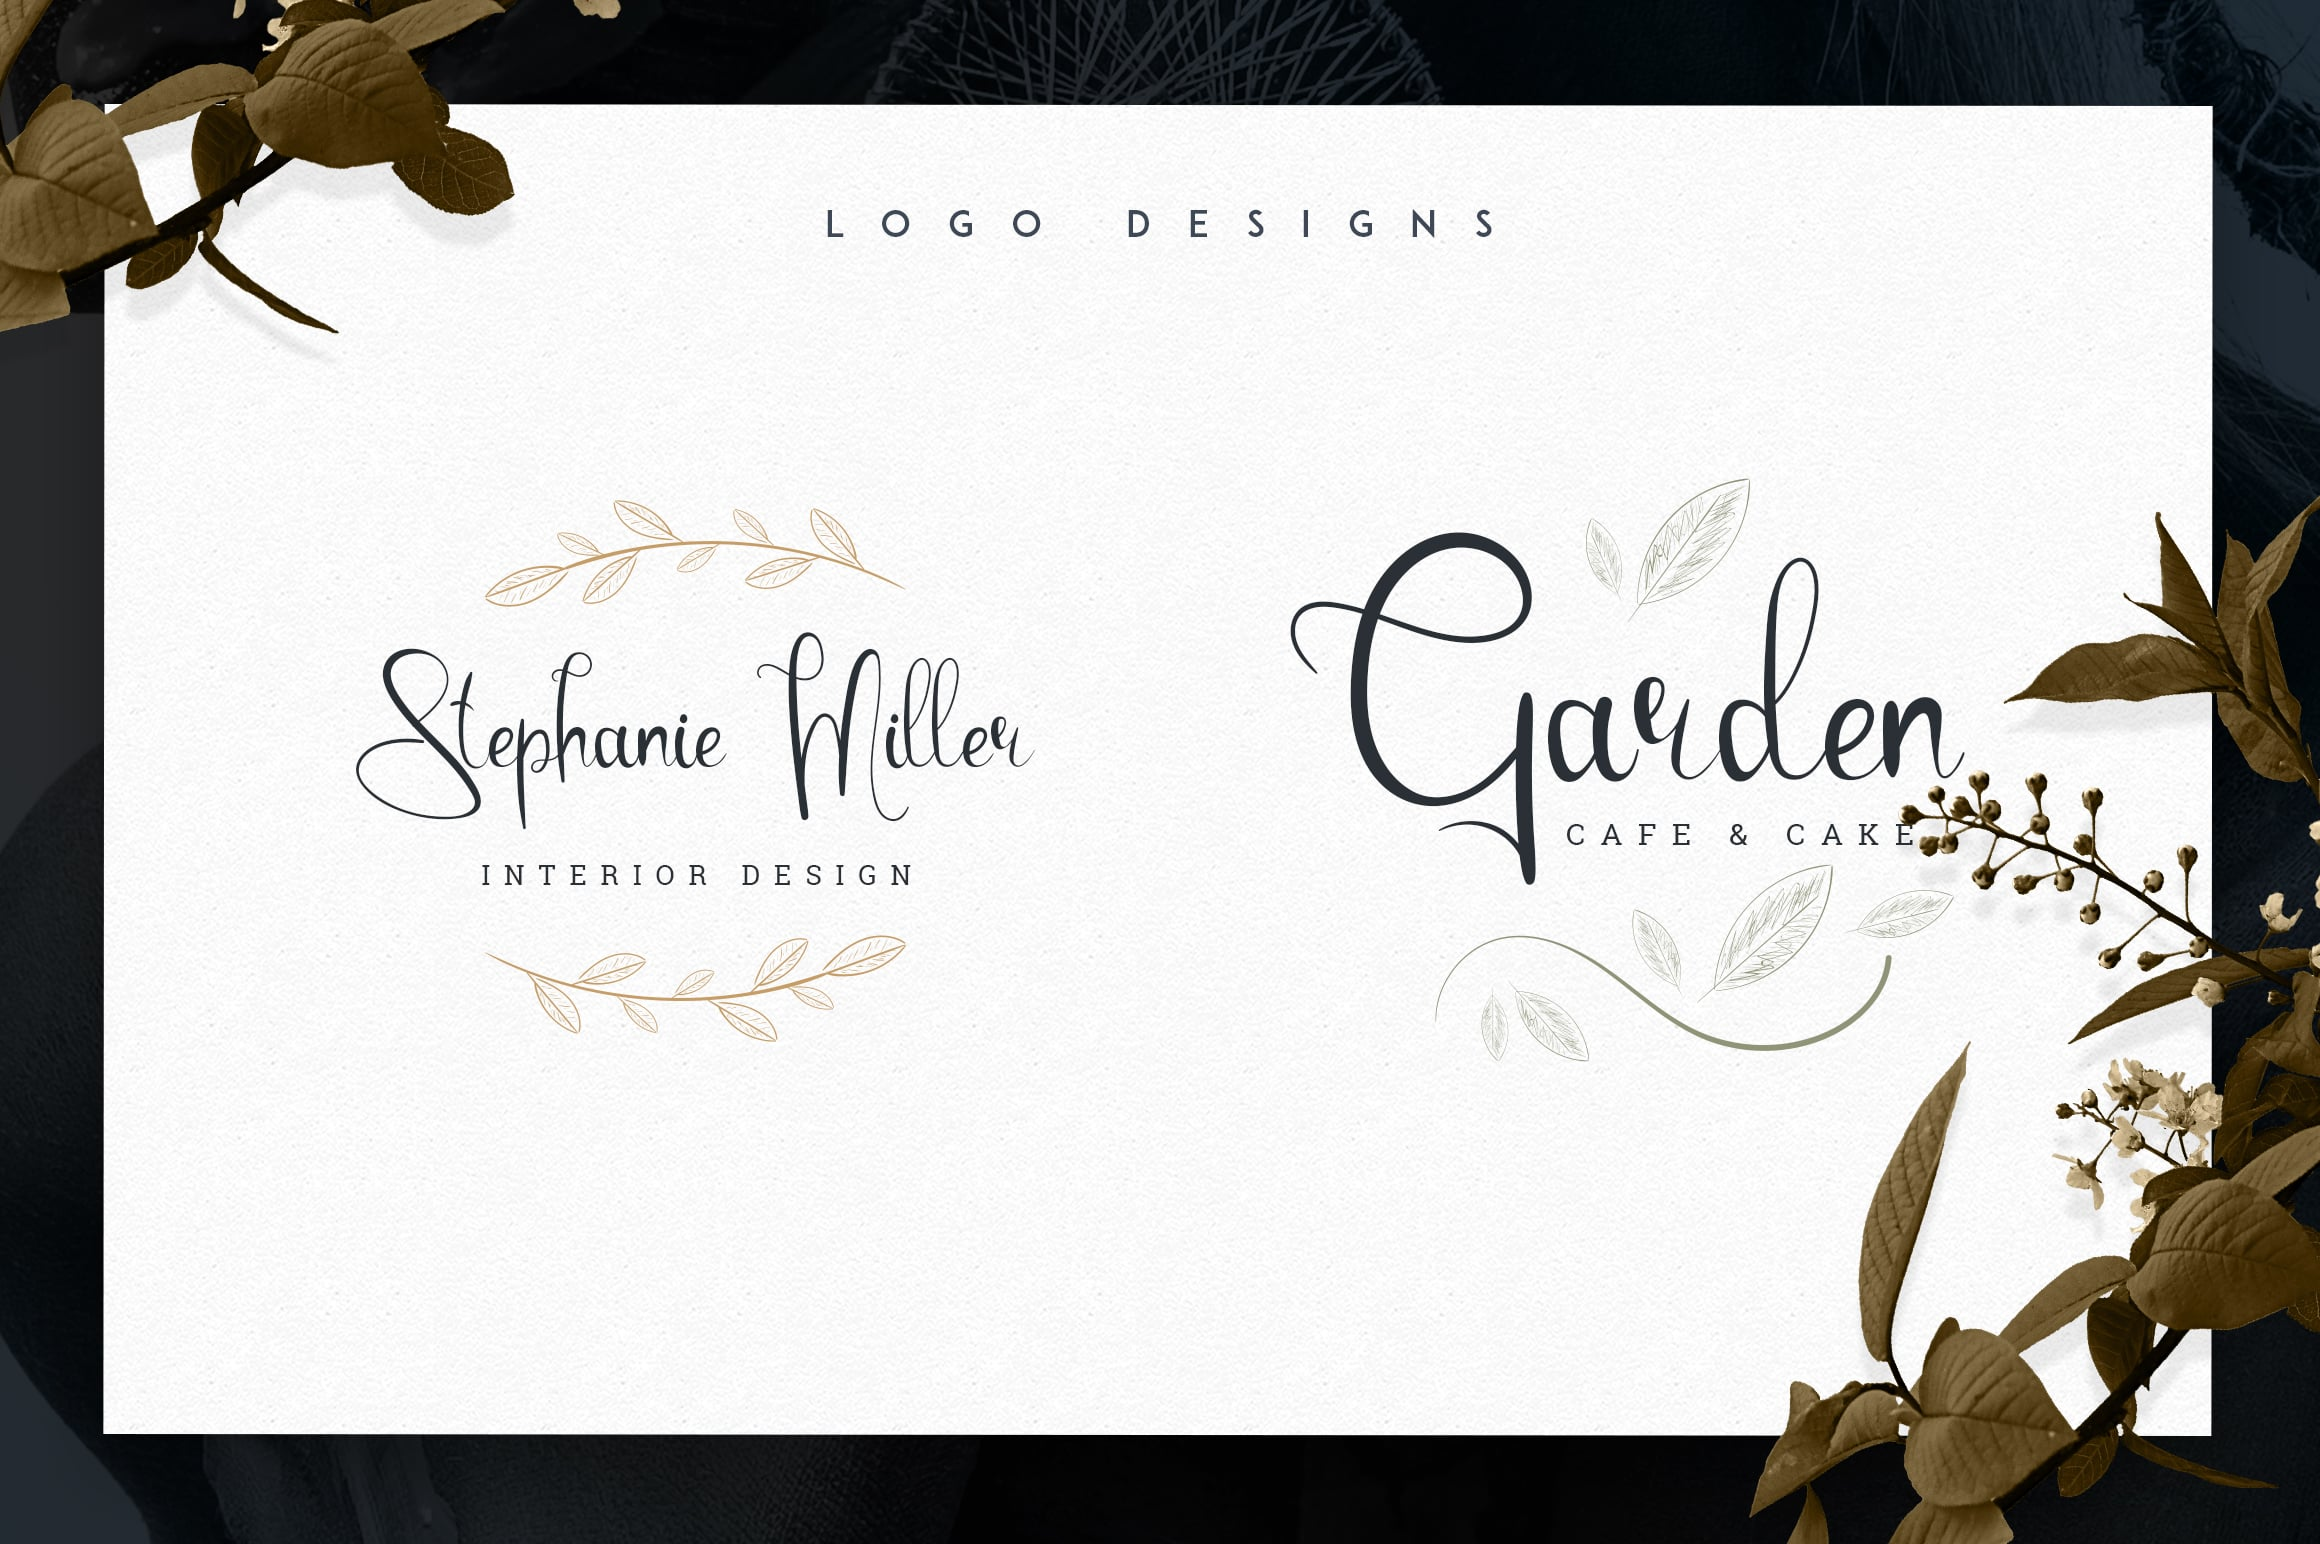 Emanuela Typeface and Designs